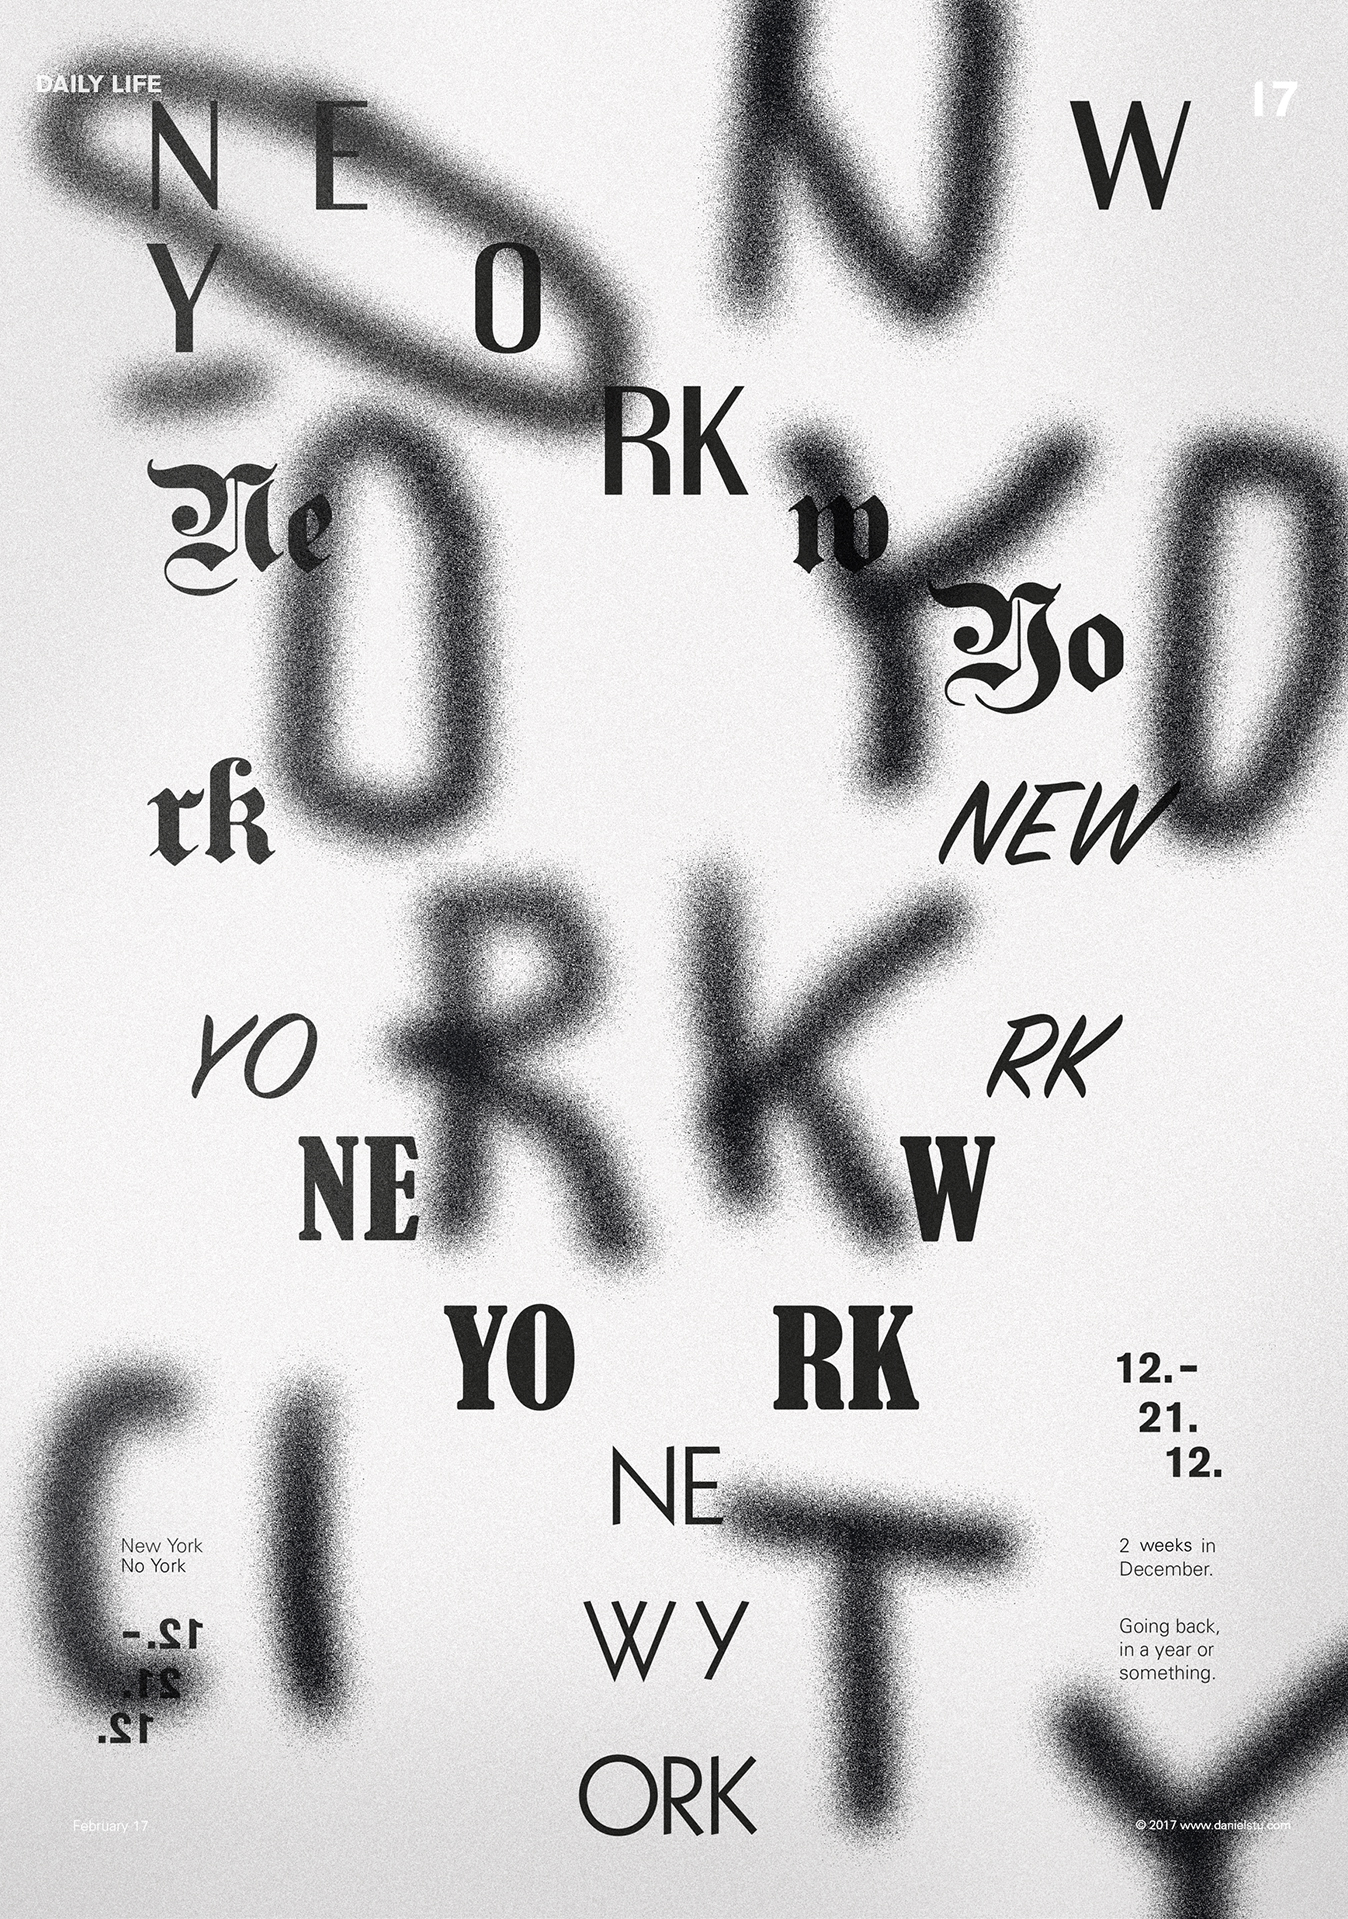 Daniel-Stuhlpfarrer_Visual-Communication_Graphic-Design_Poster_No-New-York-City